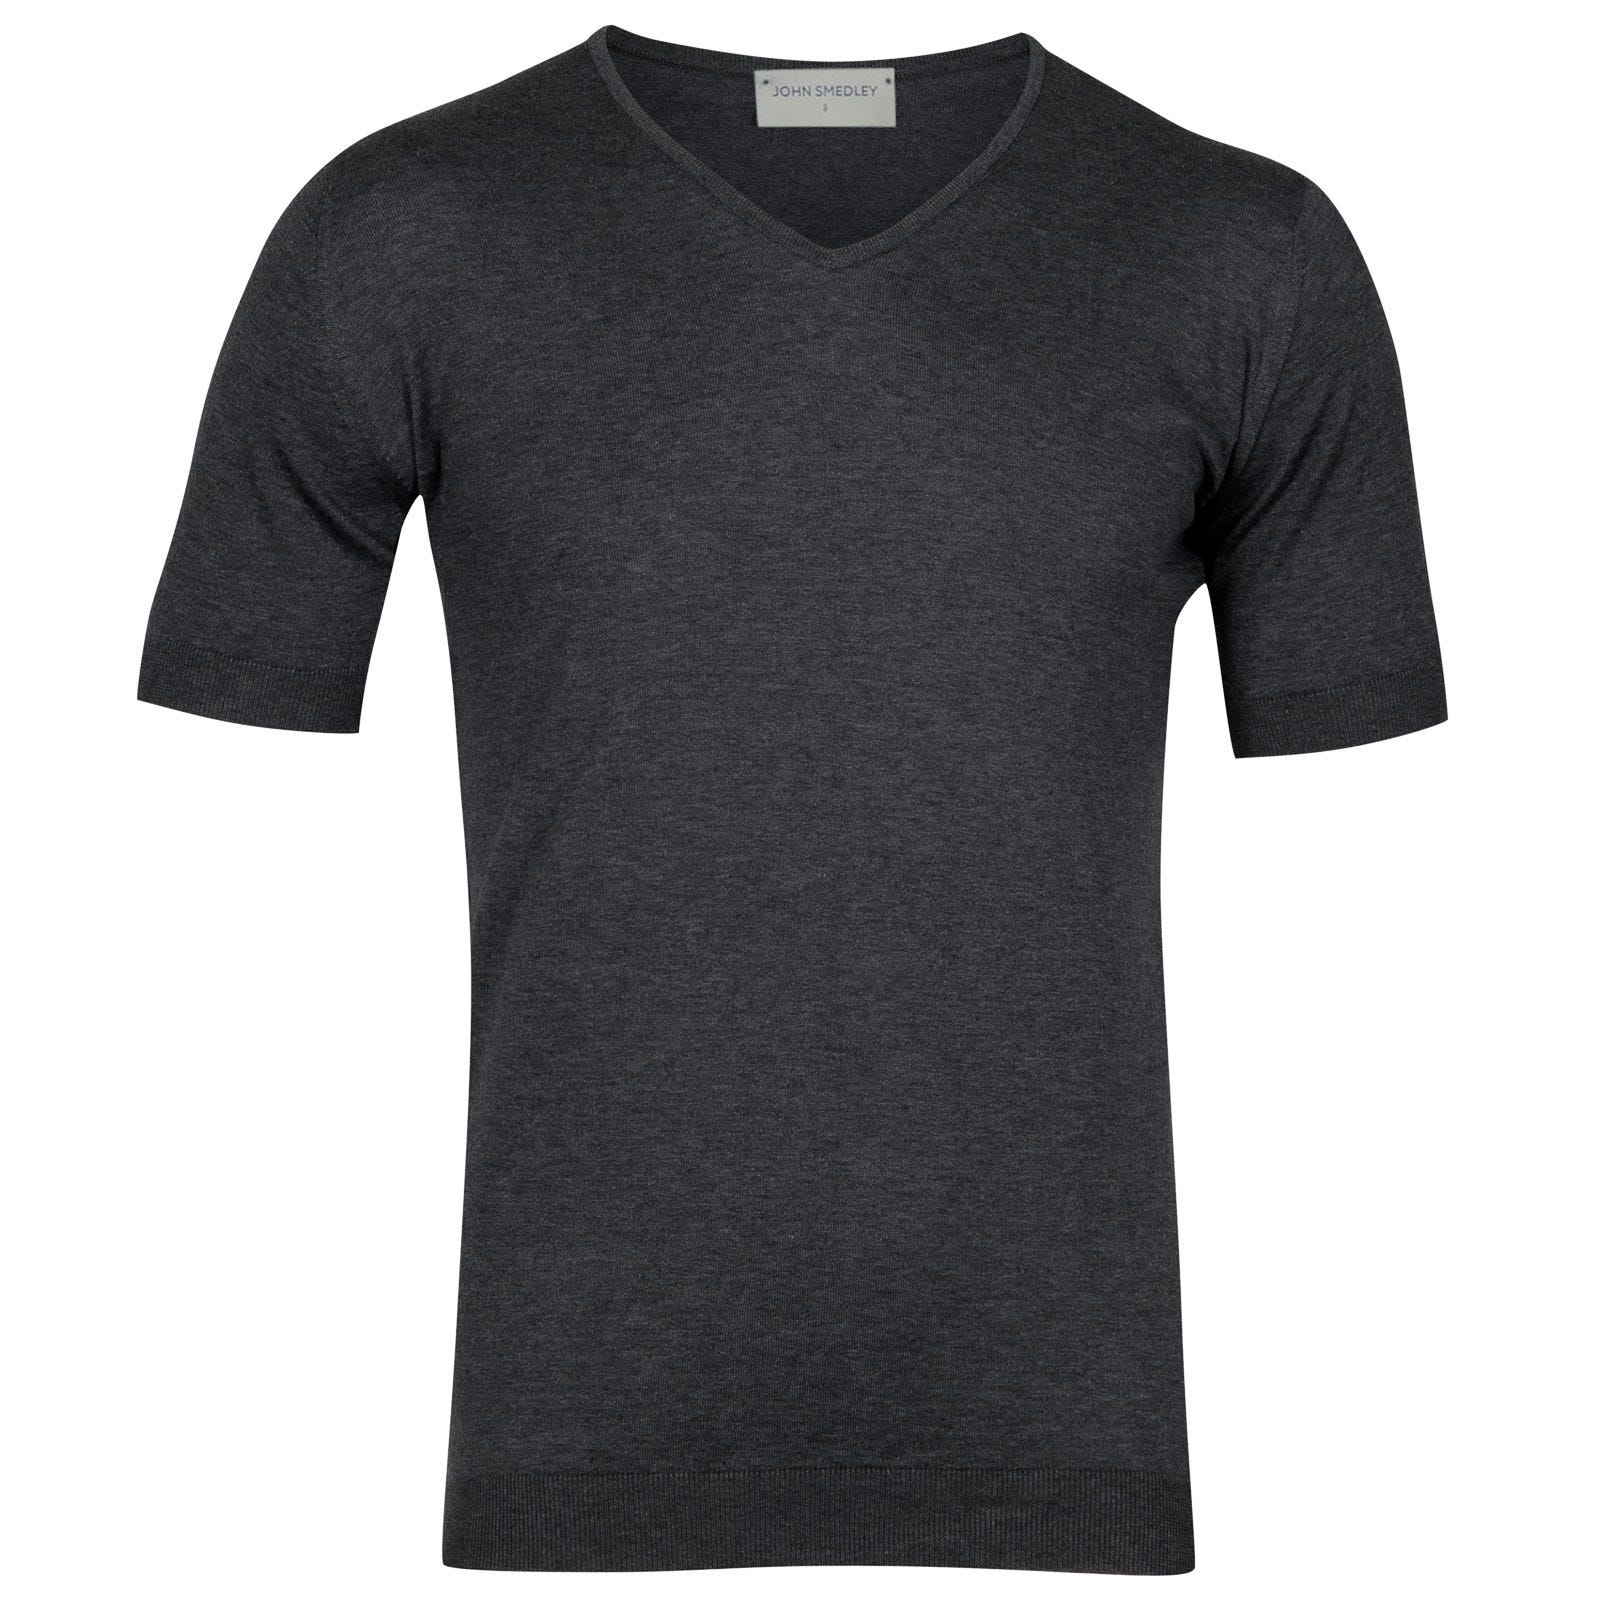 John Smedley Braedon Sea Island Cotton T-shirt in Charcoal-XL